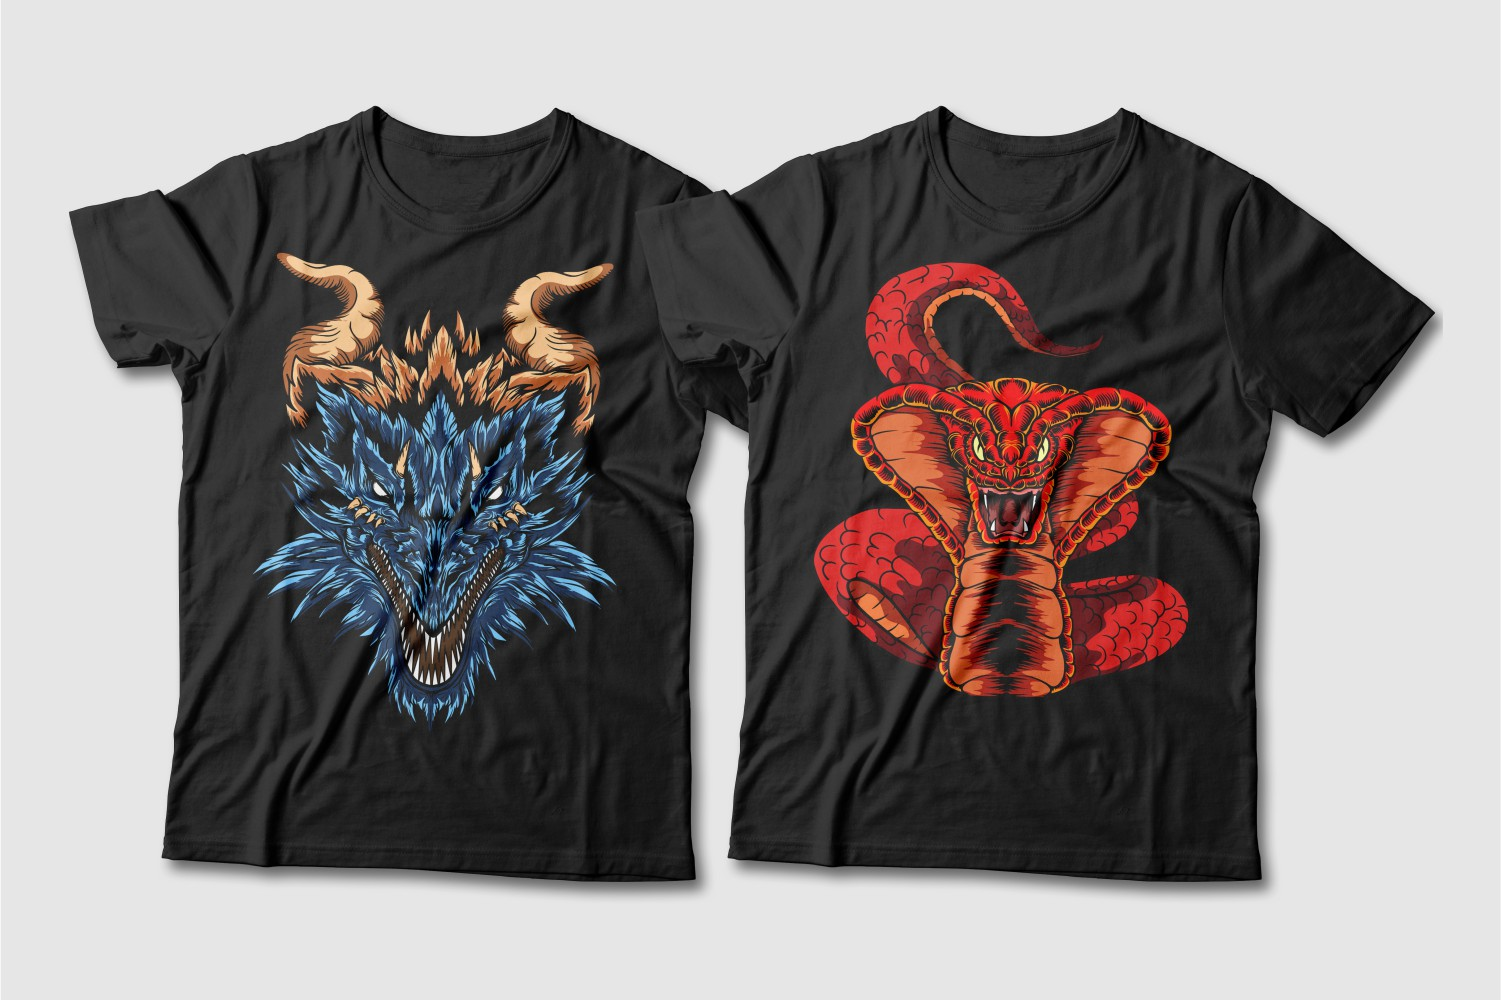 Black T-shirts with a crew neck and a blue dragon with brown horns and eyes and a red cobra.